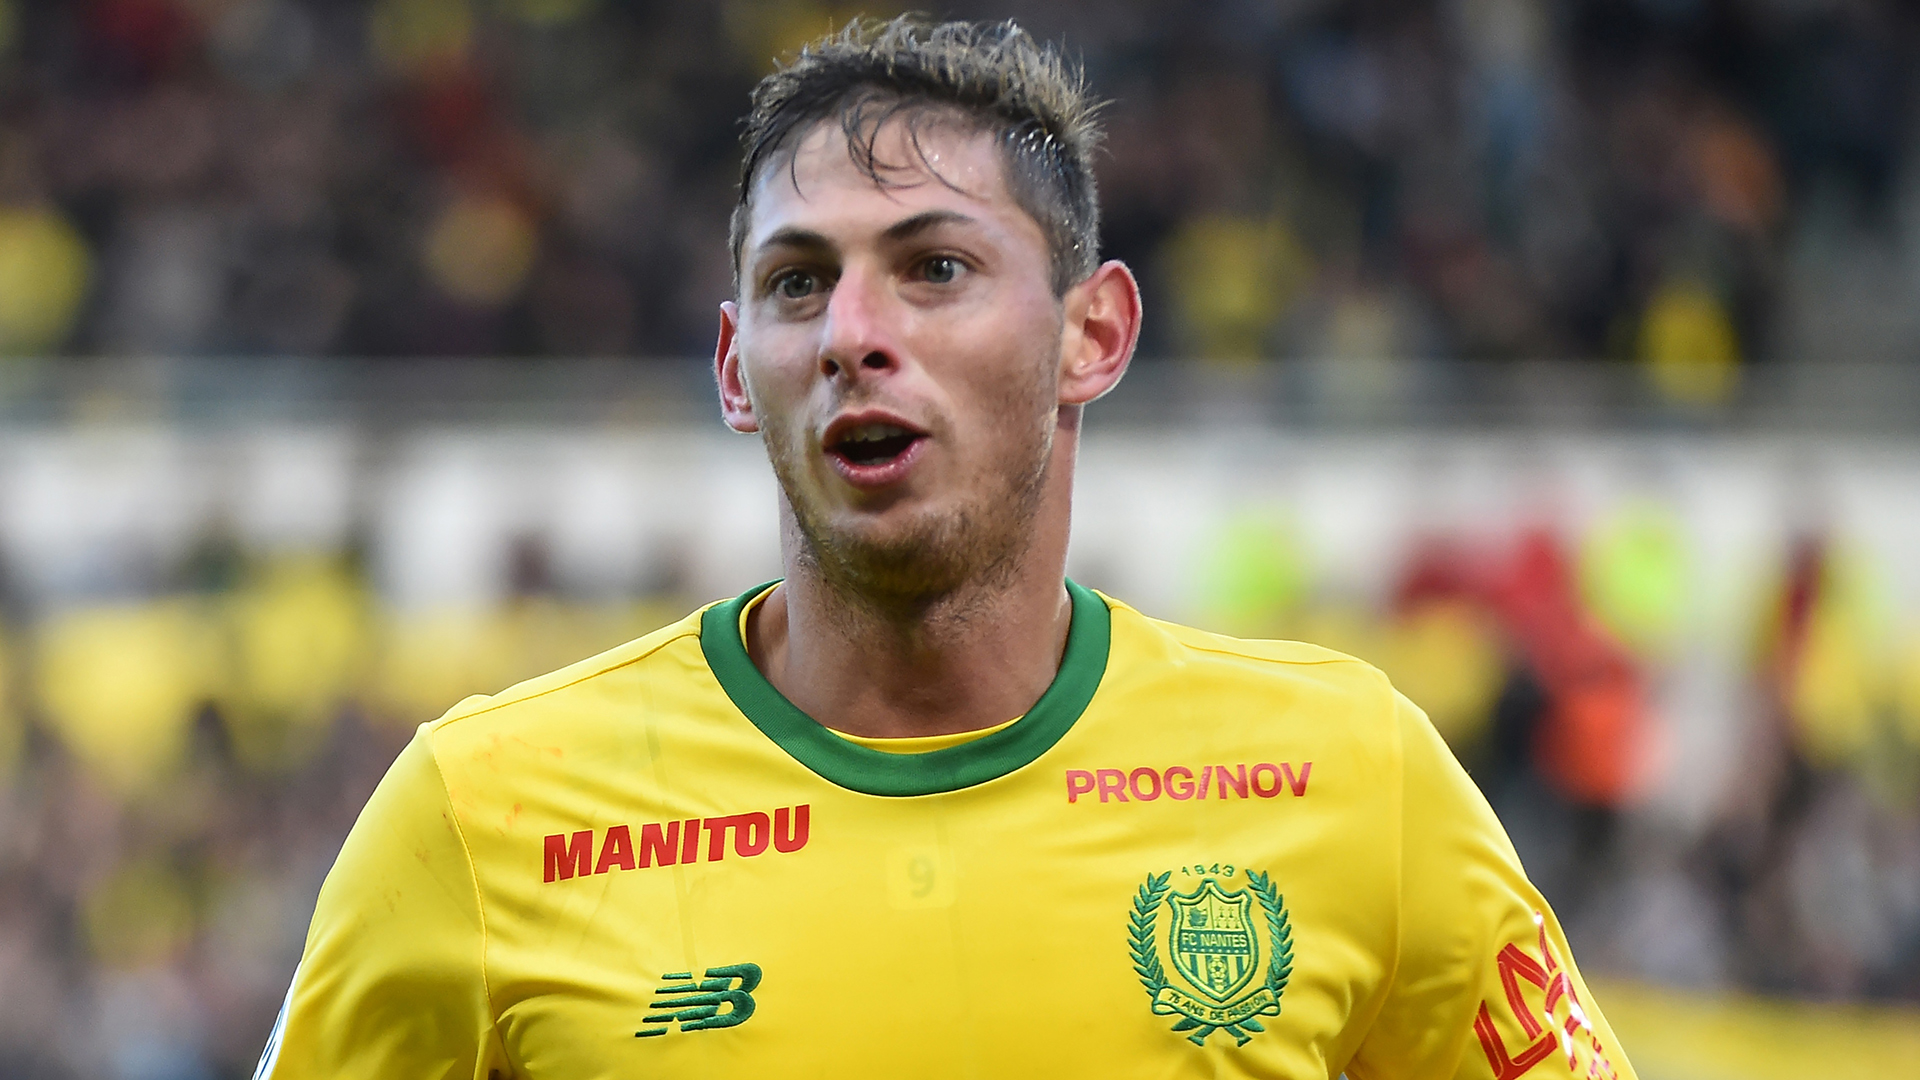 Emiliano Sala's death: Cardiff send information to French prosecutors about Nantes' involvement